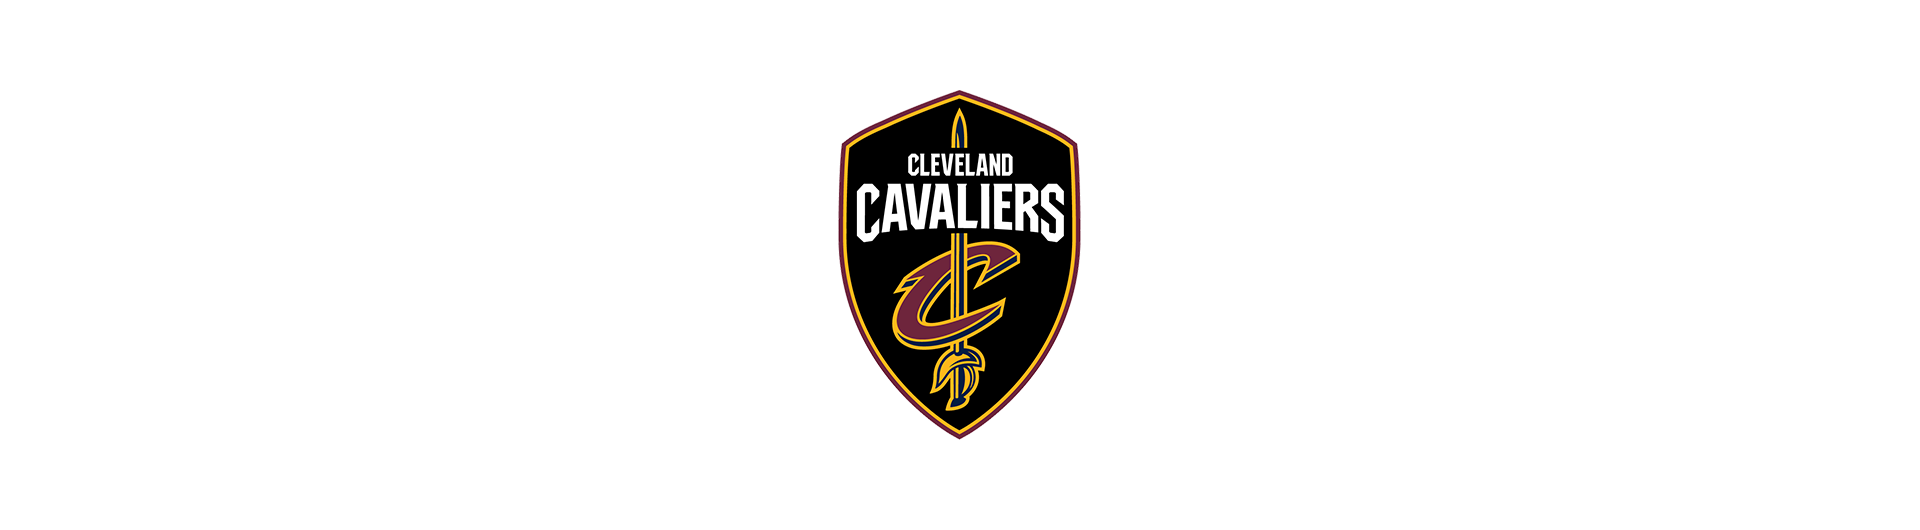 Cleveland Cavaliers (CLE)